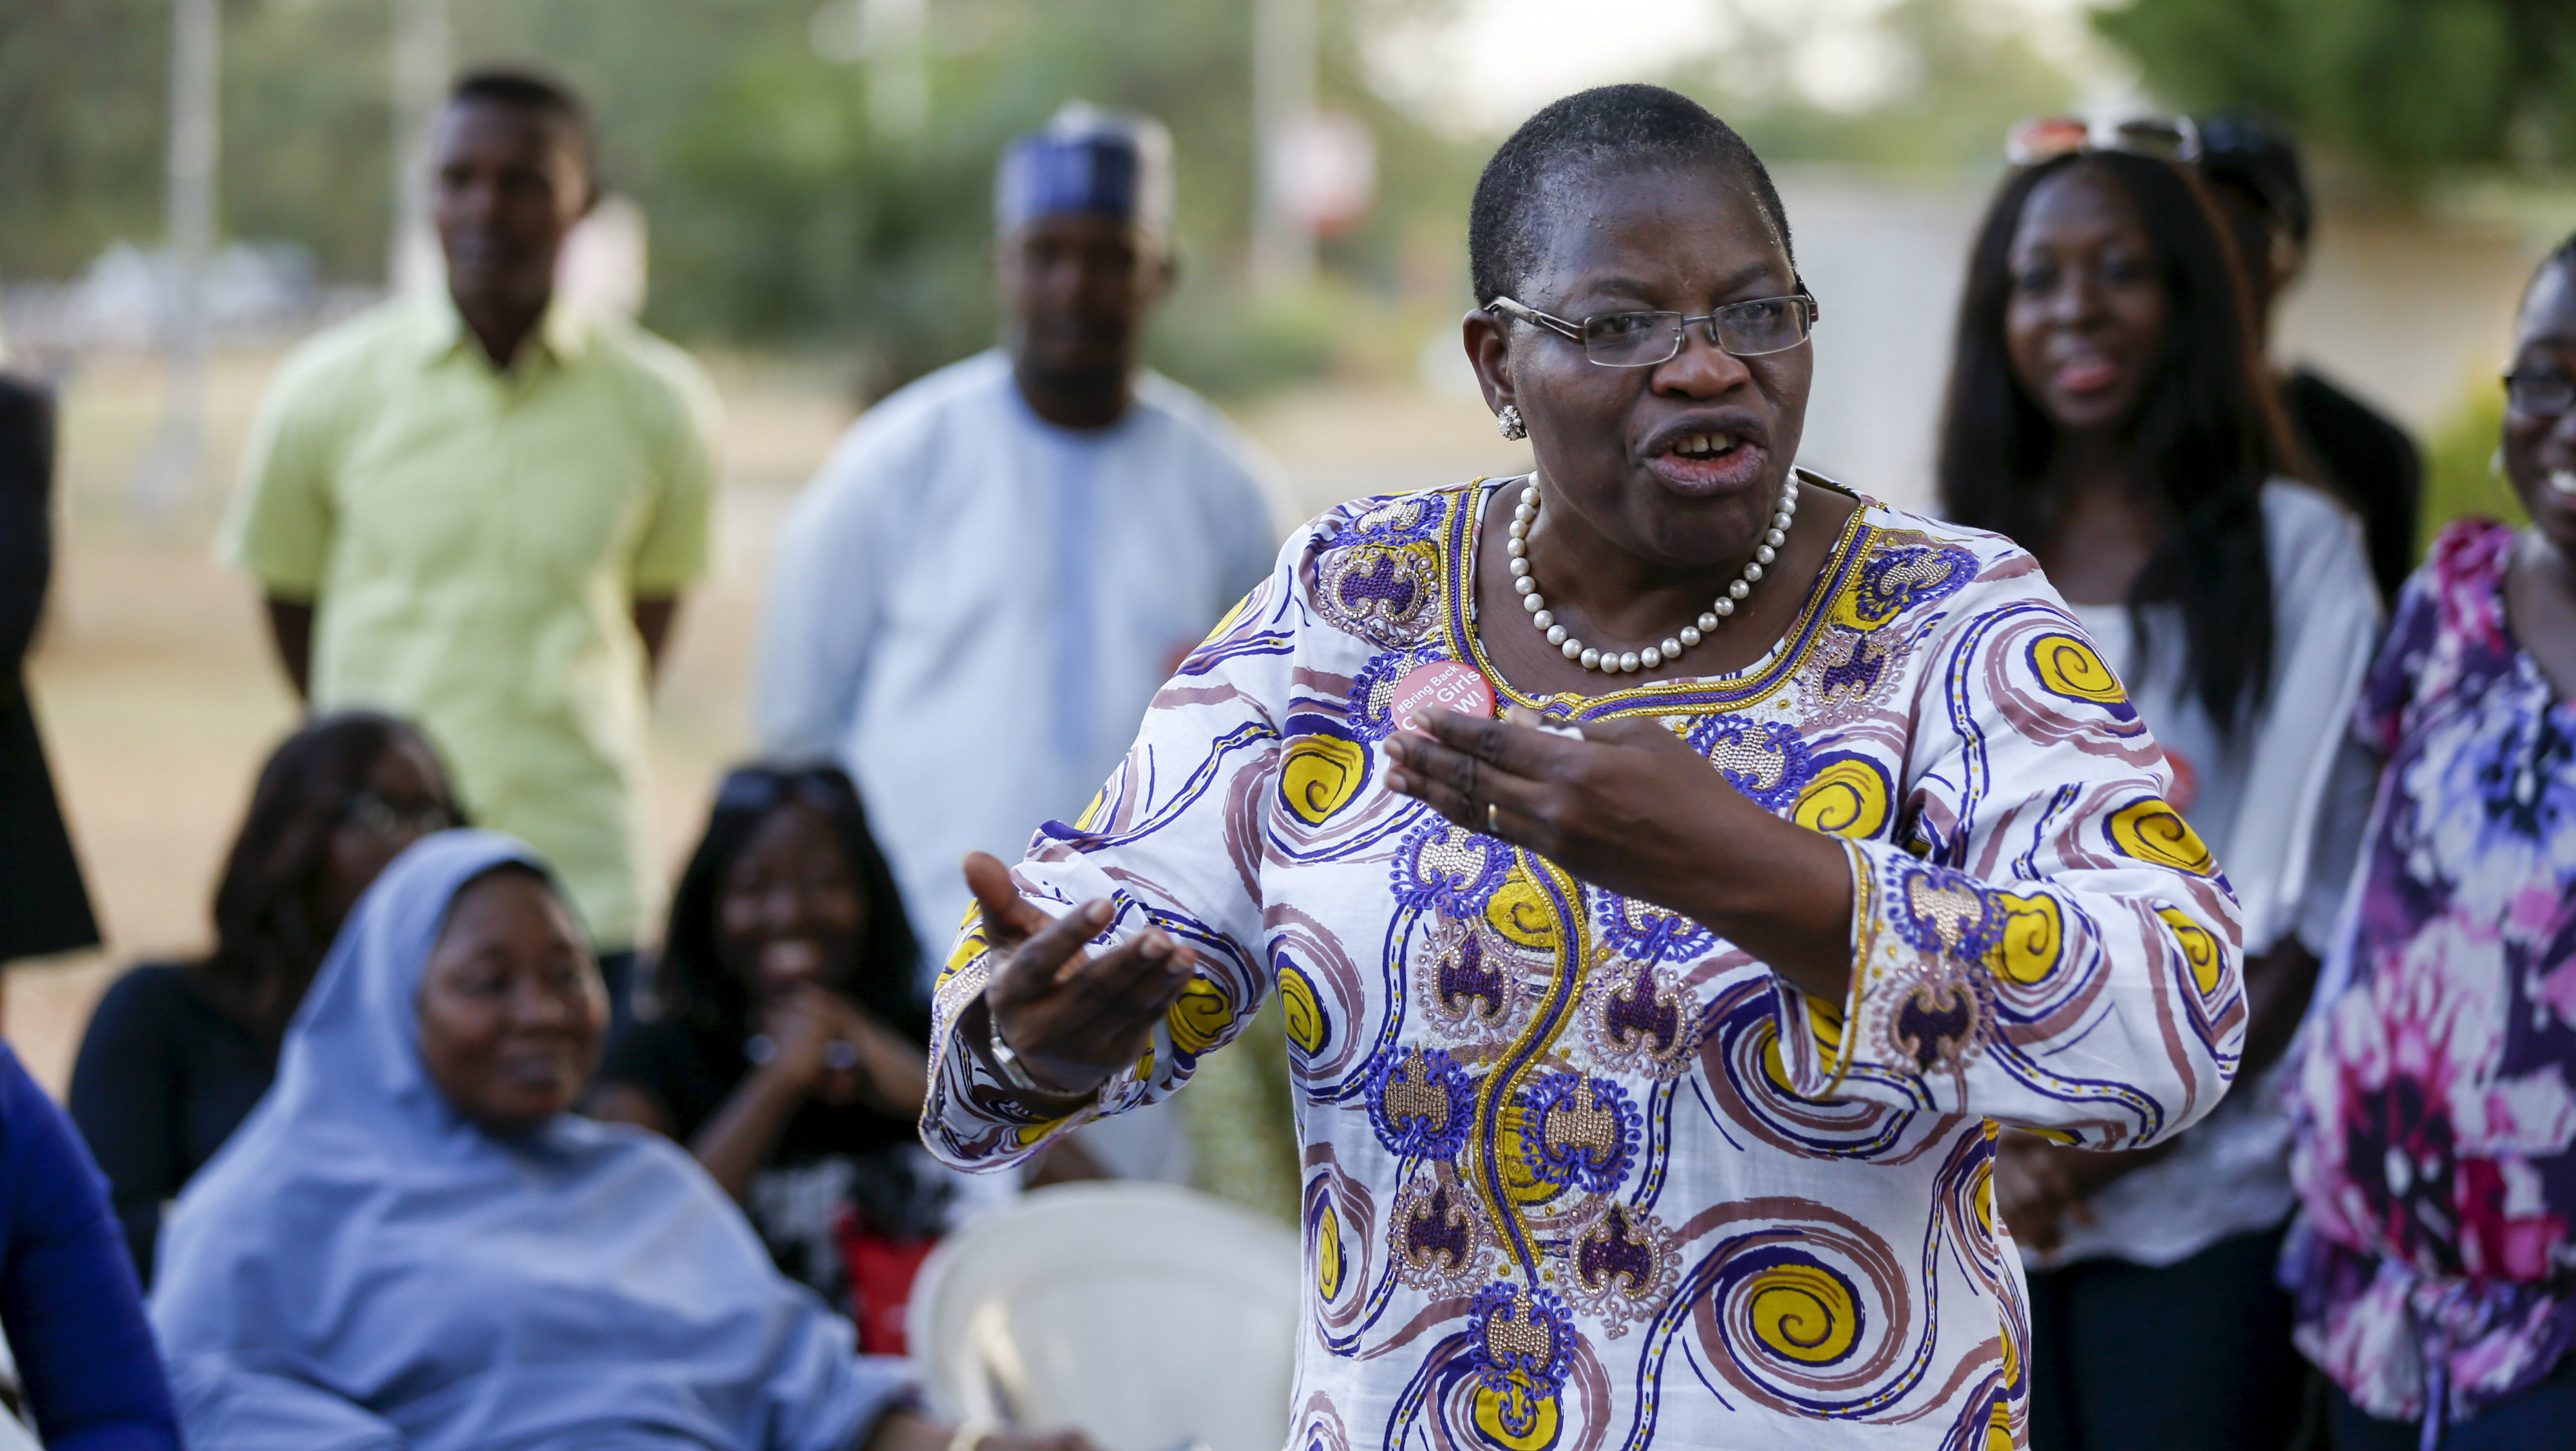 Dr Oby Ezekwesili expresses support about the rescue